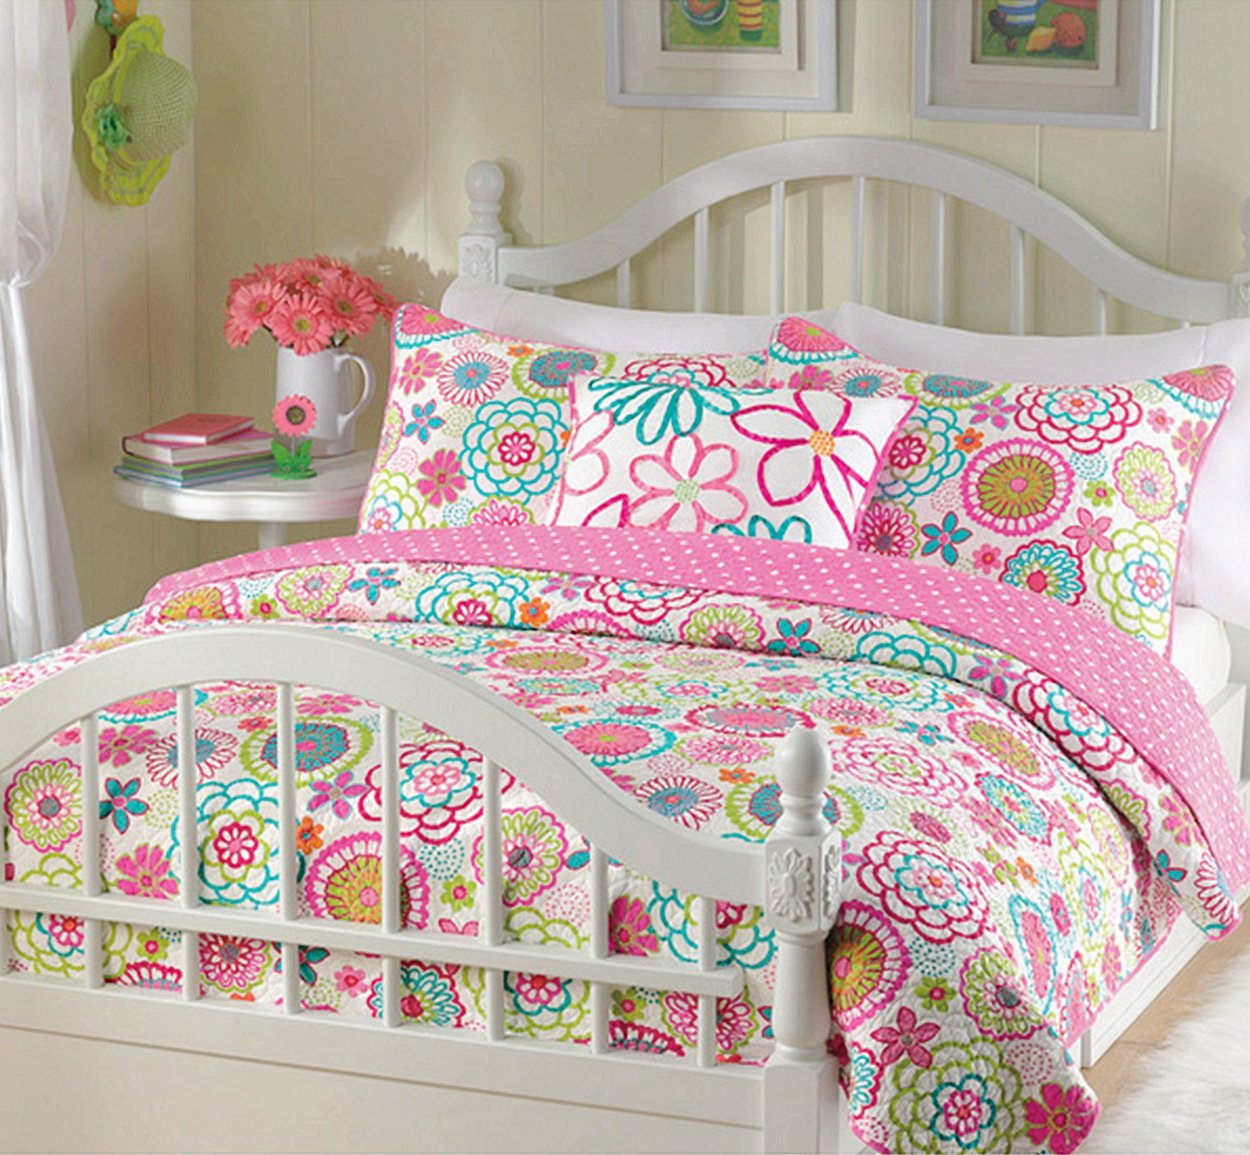 Cozy Line Home Fashions 4-Piece Quilt Bedding Set, Mariah Pink Polka Dot Bedding Quilt Set, Reversible Coverlet Bedspread, Gifts for Kids Girls(Queen - 4pc: 1 quilt + 2 shams + 1 Decorative Pillows) by Cozy Line Home Fashions